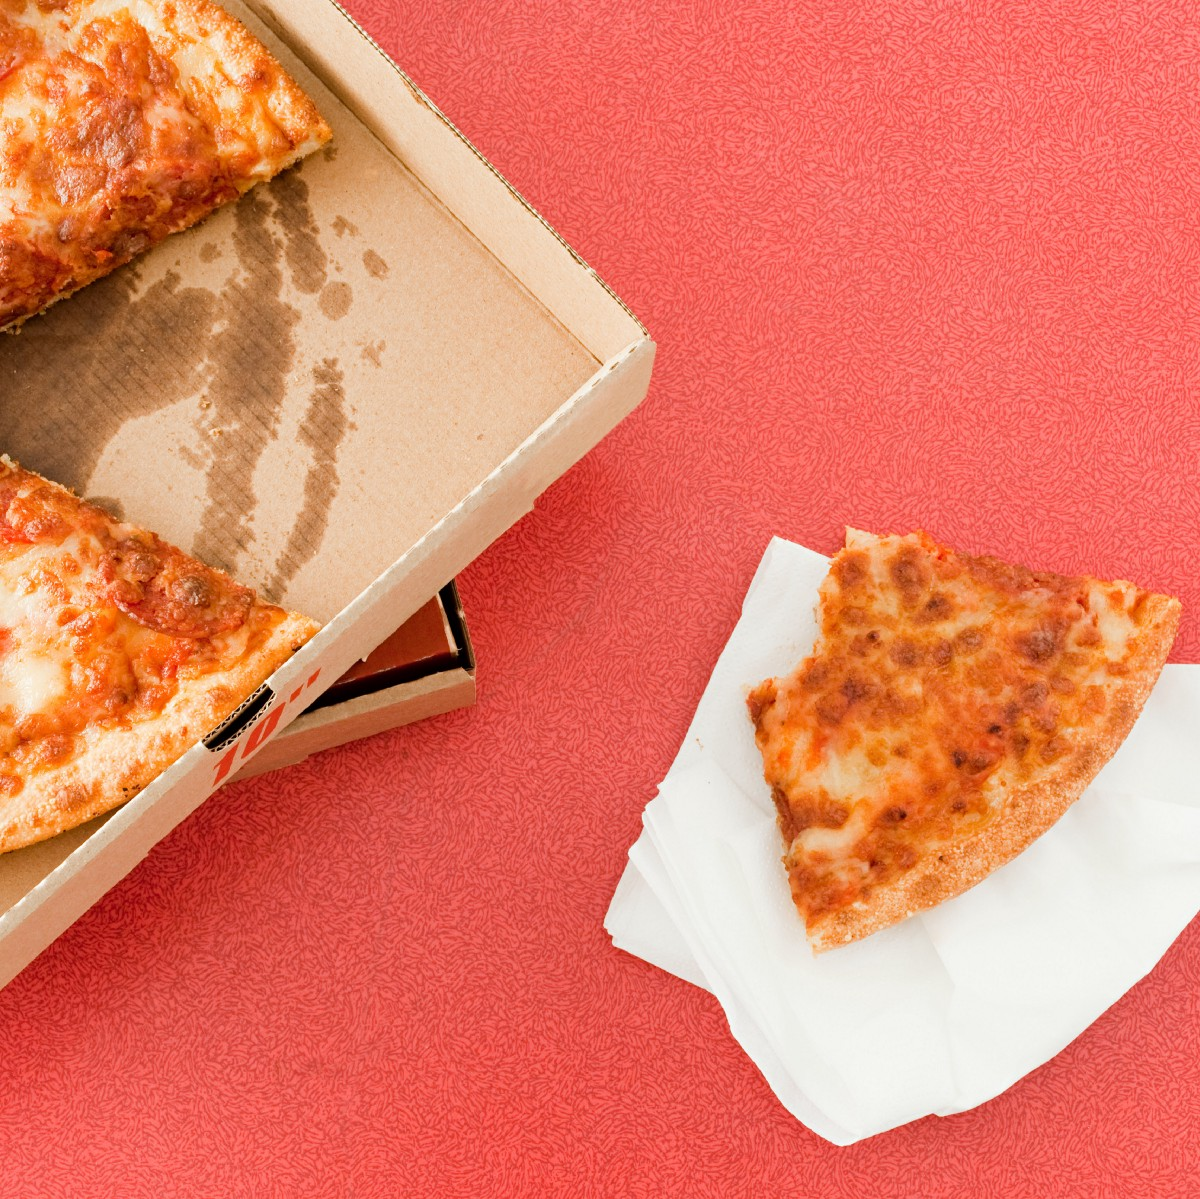 Stop Blotting Your Pizza